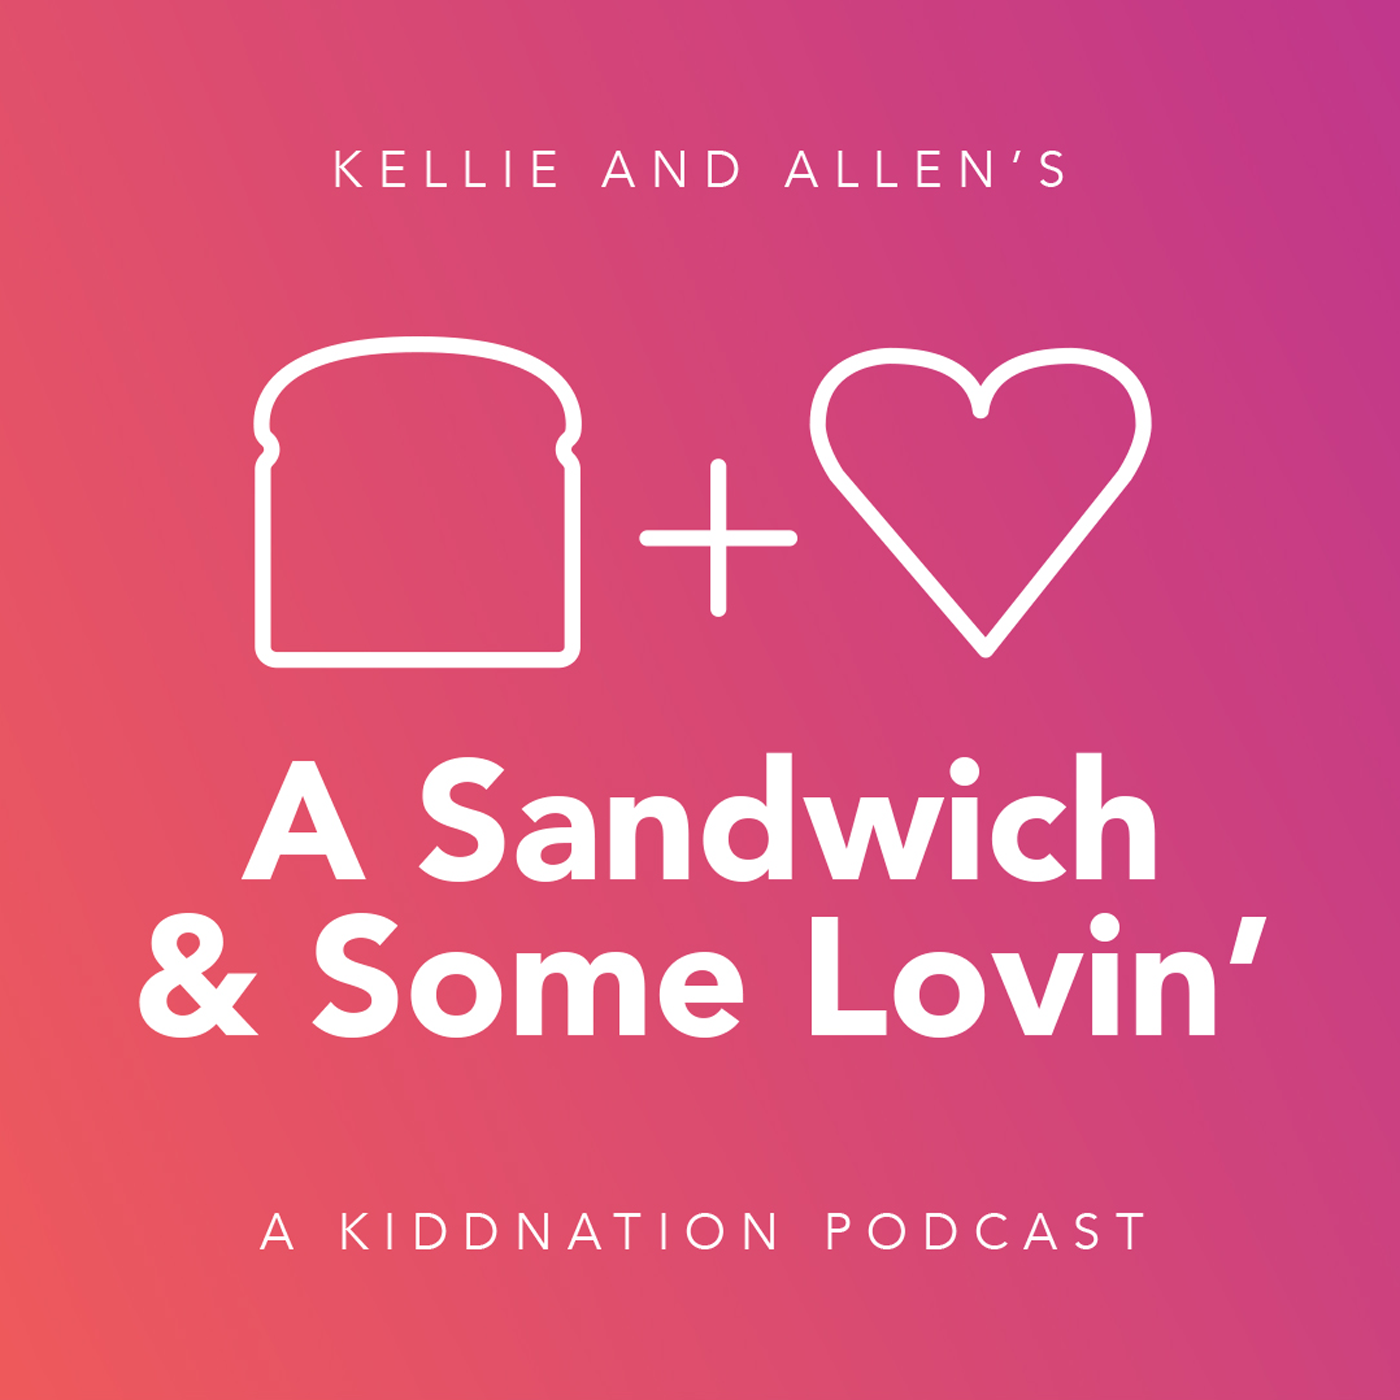 A Sandwich and Some Lovin' on Apple Podcasts